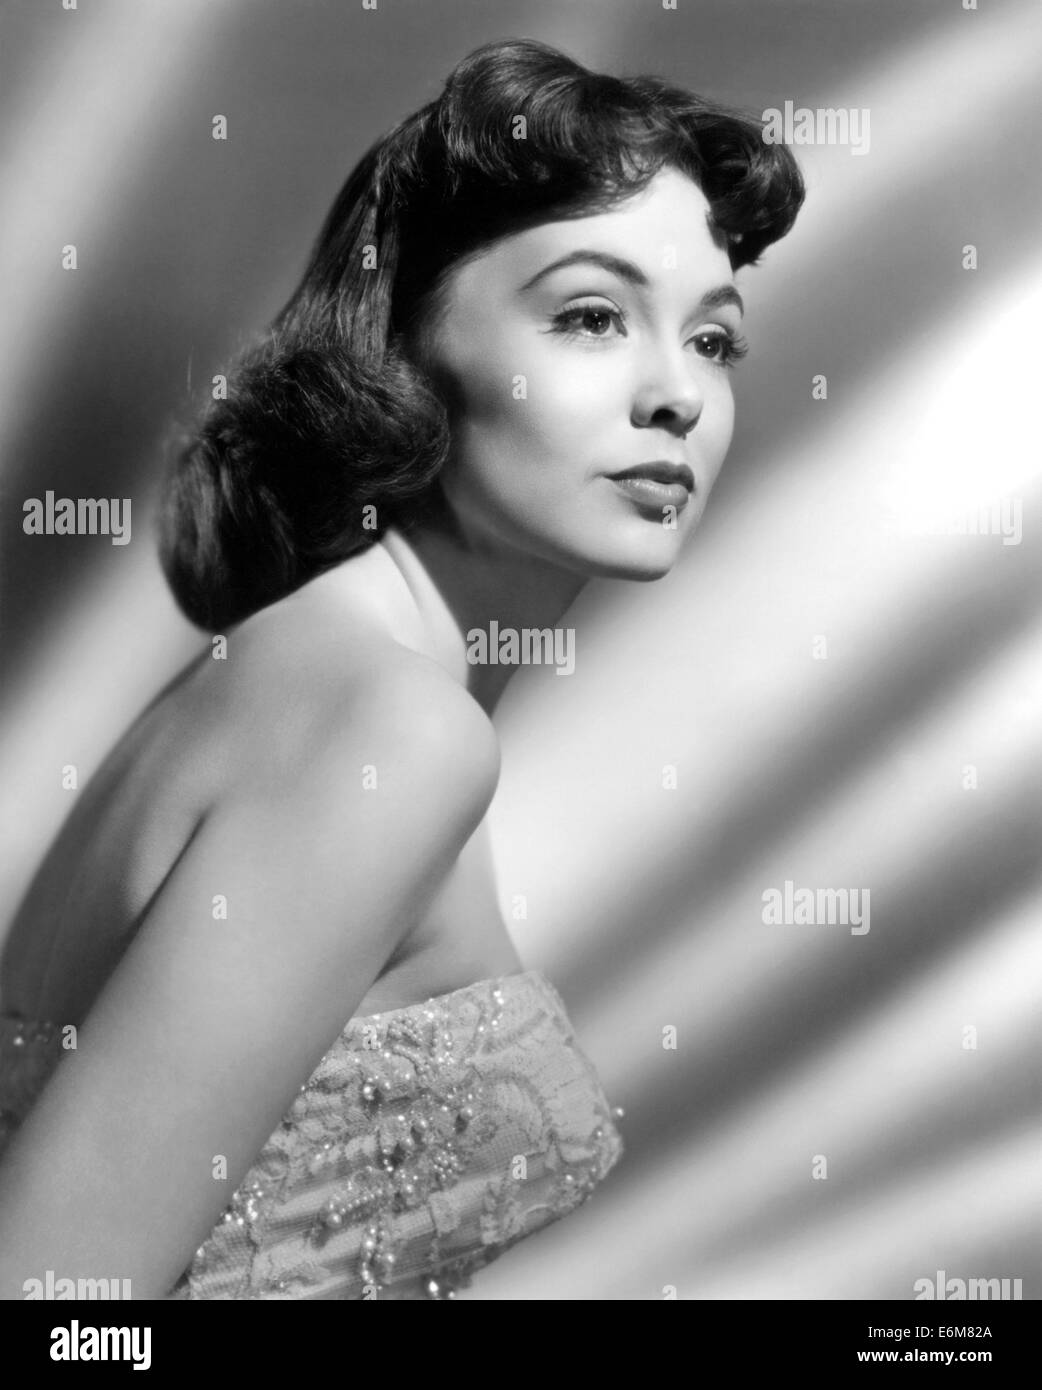 BARBARA RUSH US film and TV actress about 1950 - Stock Image